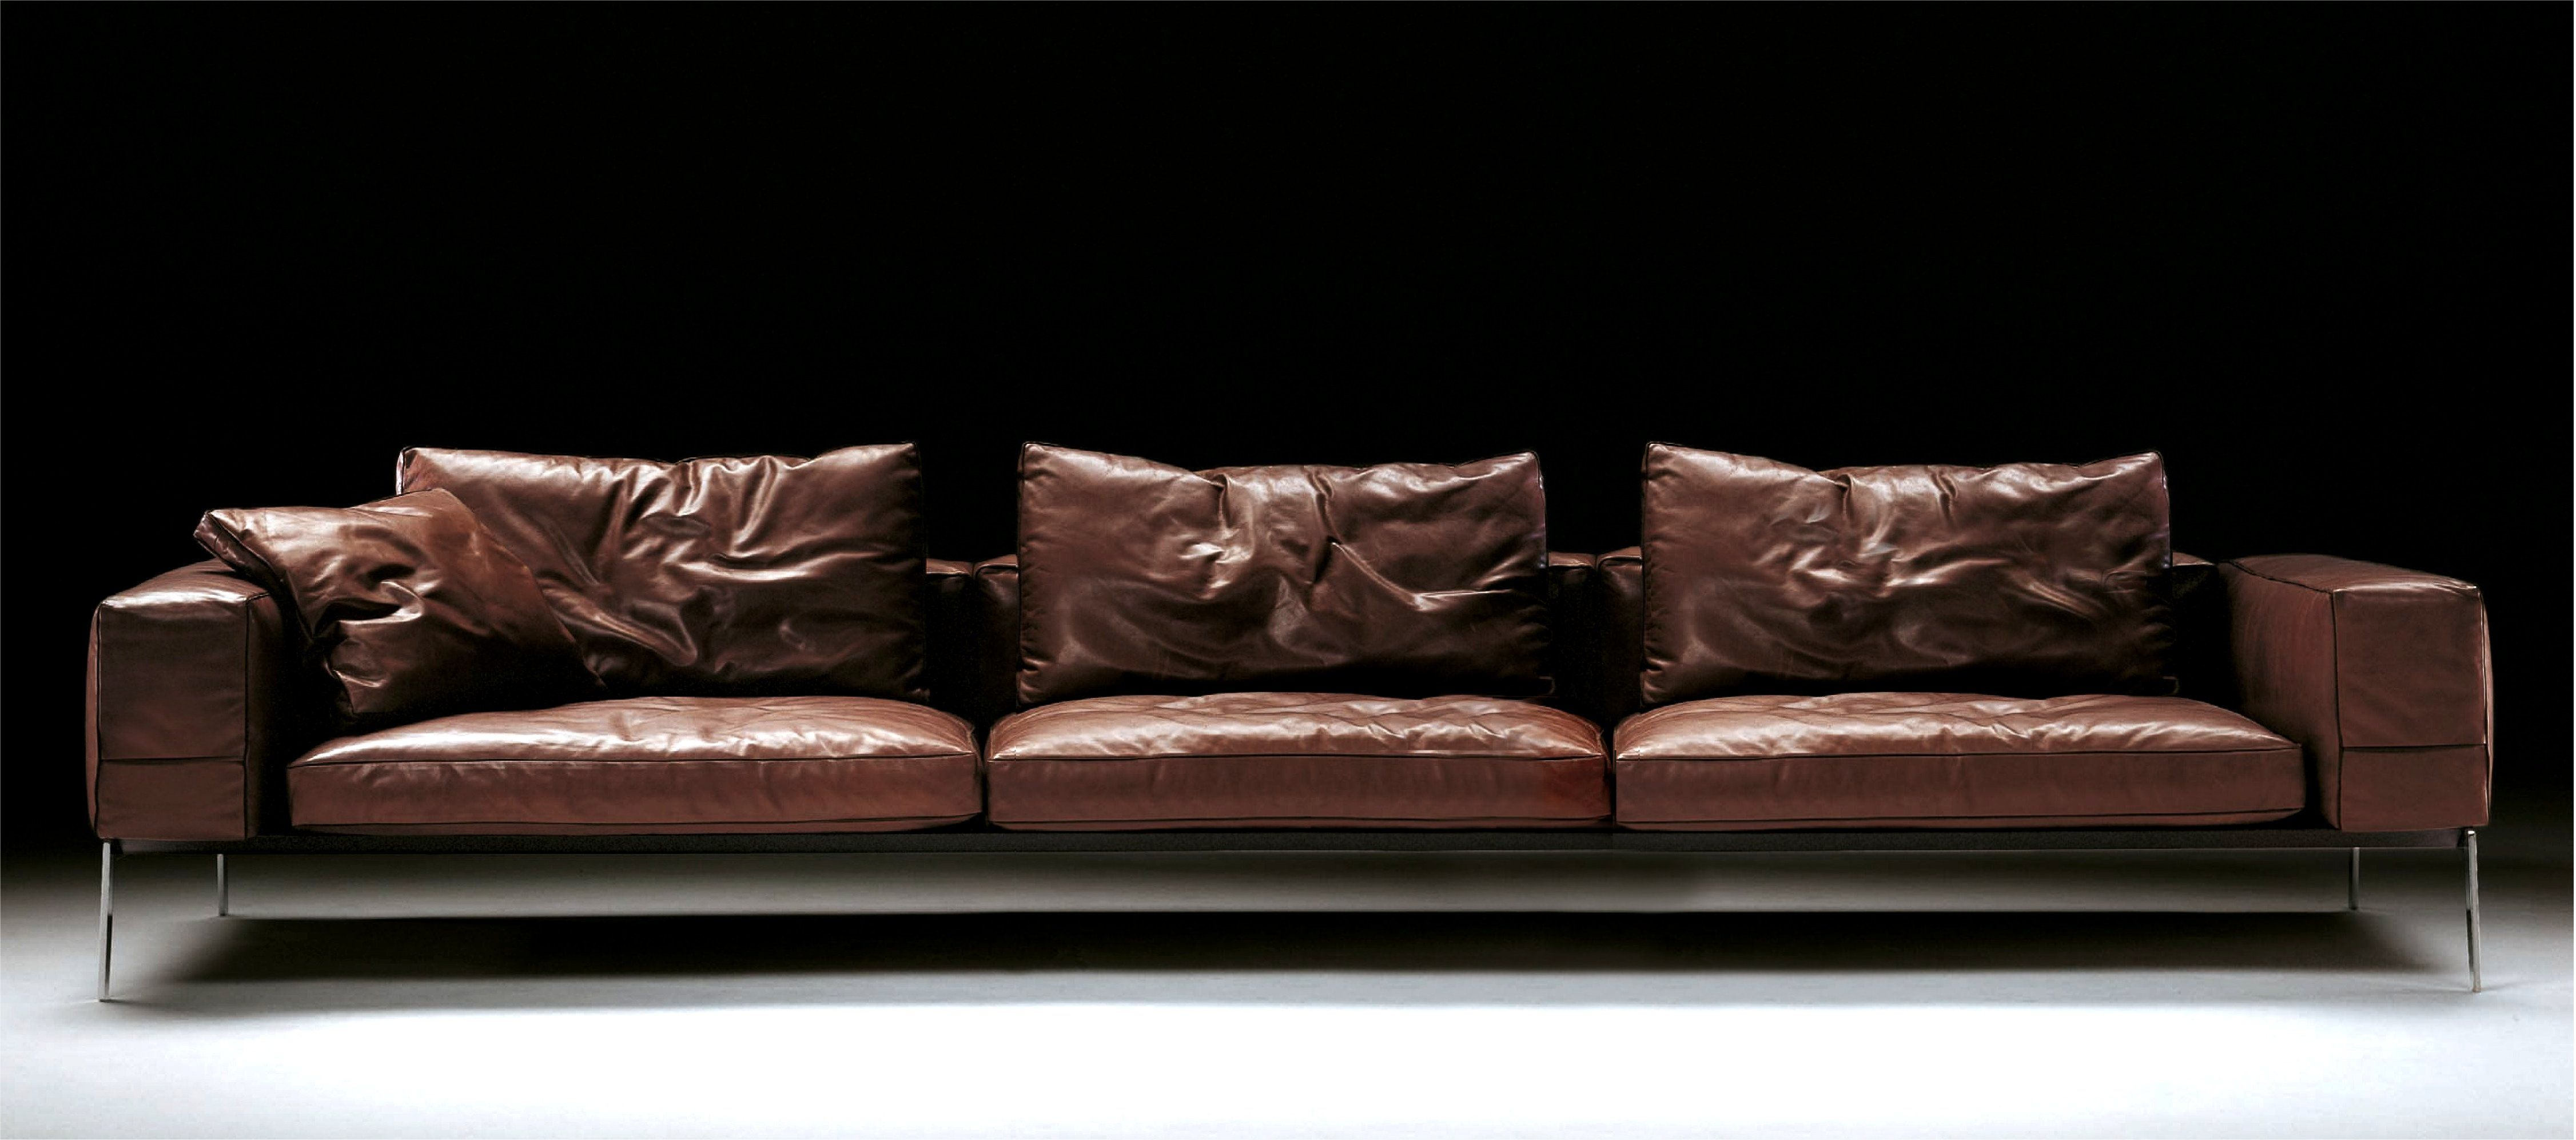 Houston Collection Is Made From Genuine High Quality Italian Leather Made In Italy Flexform Sofa Flexform Italian Leather Sofa